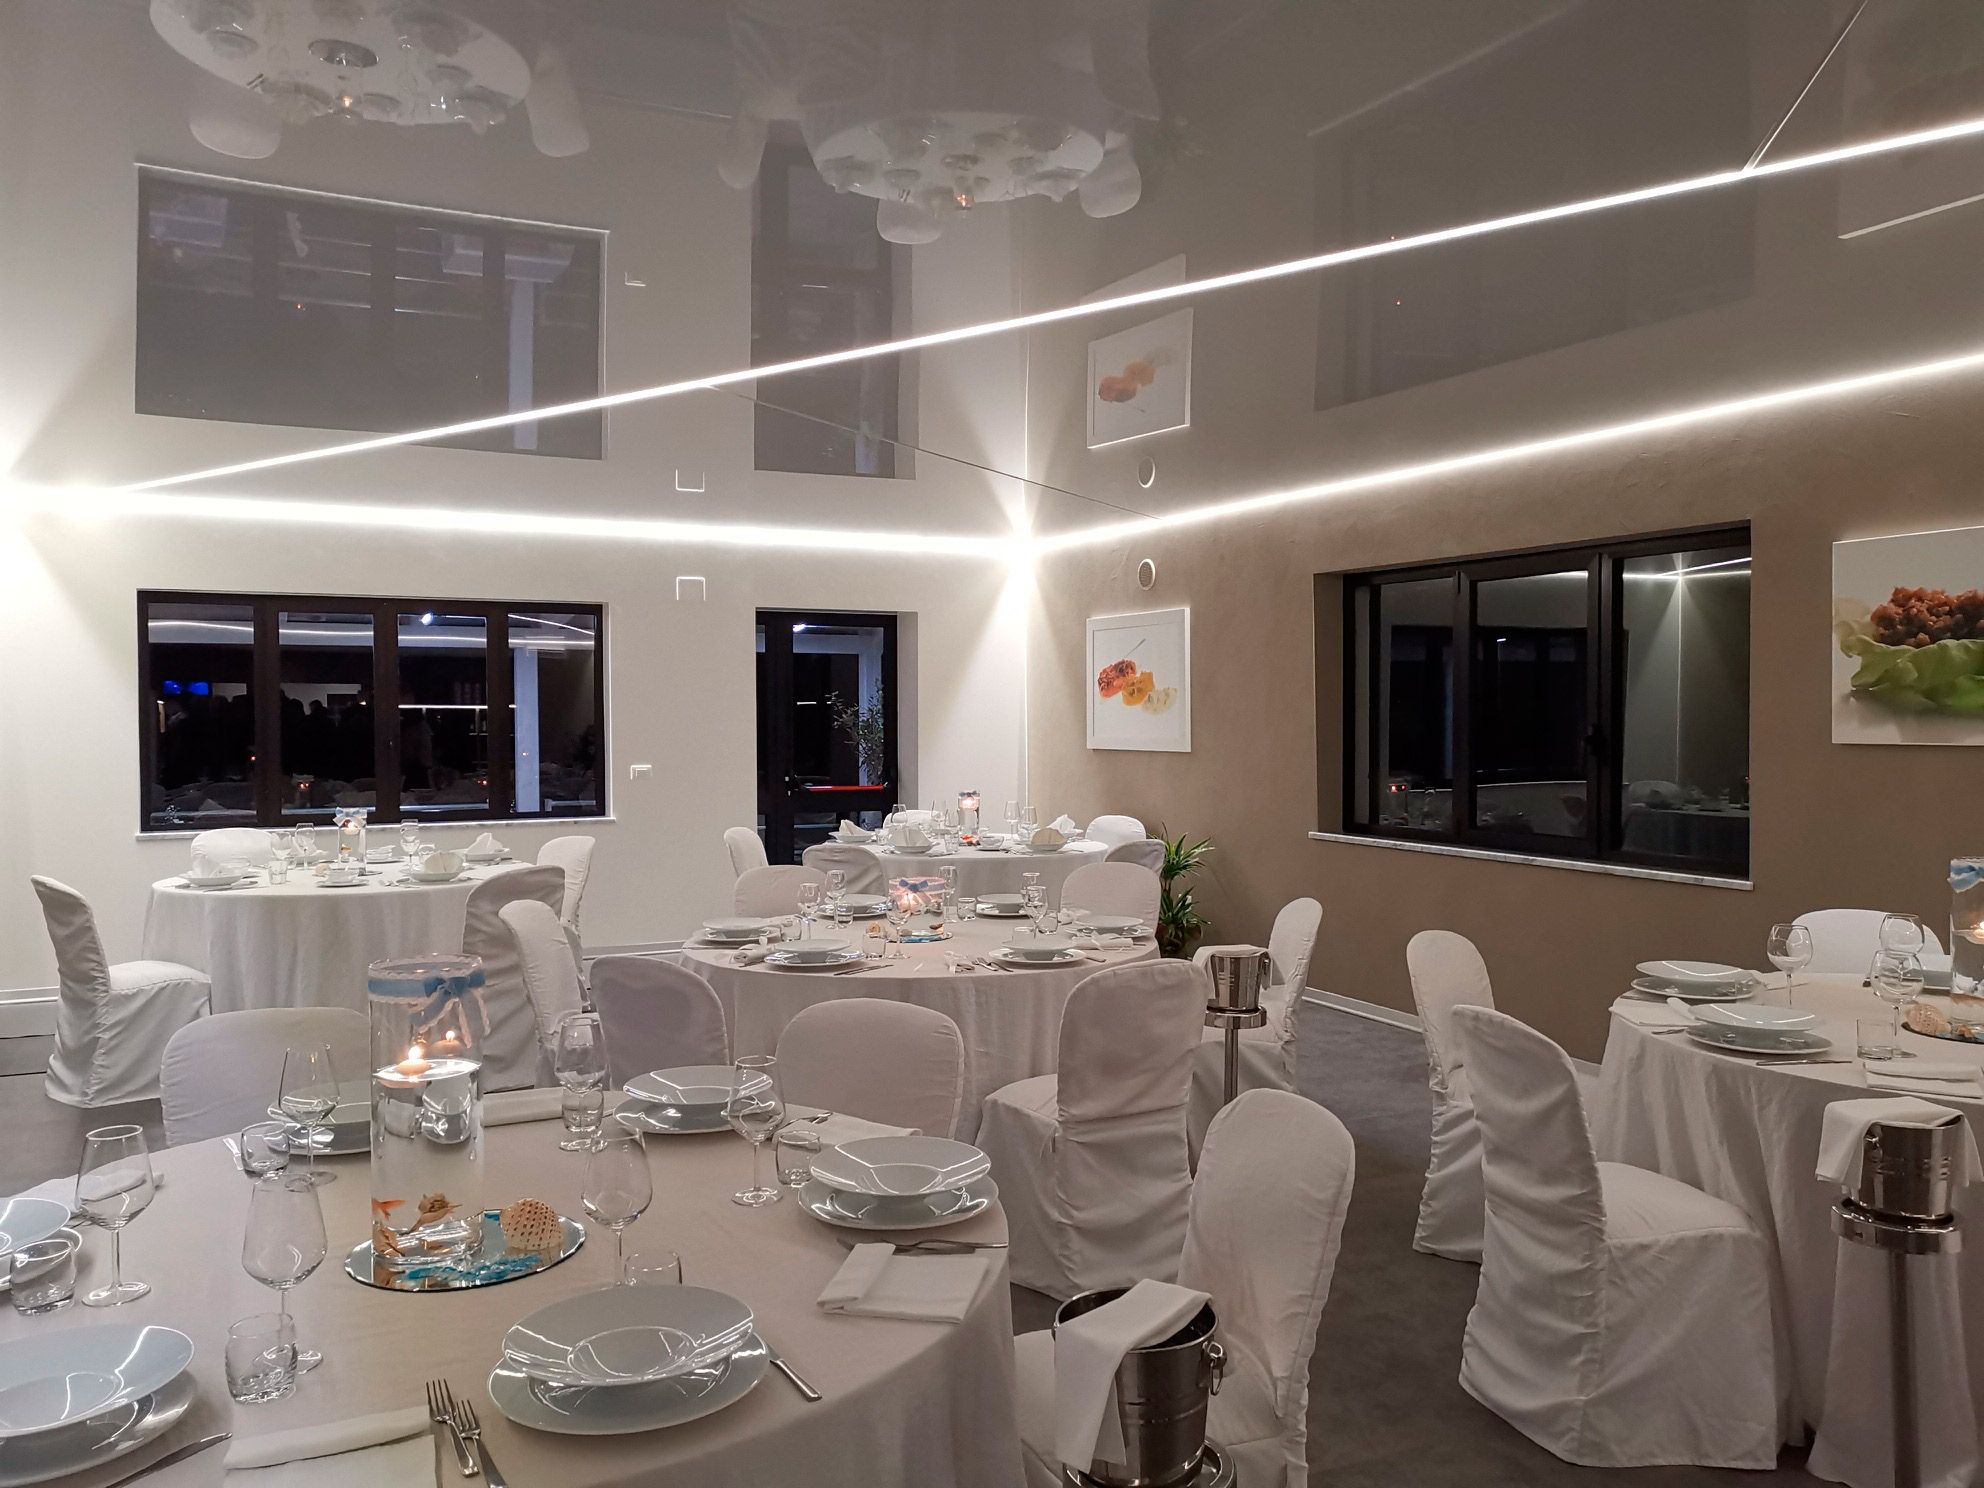 stretch-ceiling-restaurant-italy-image-1